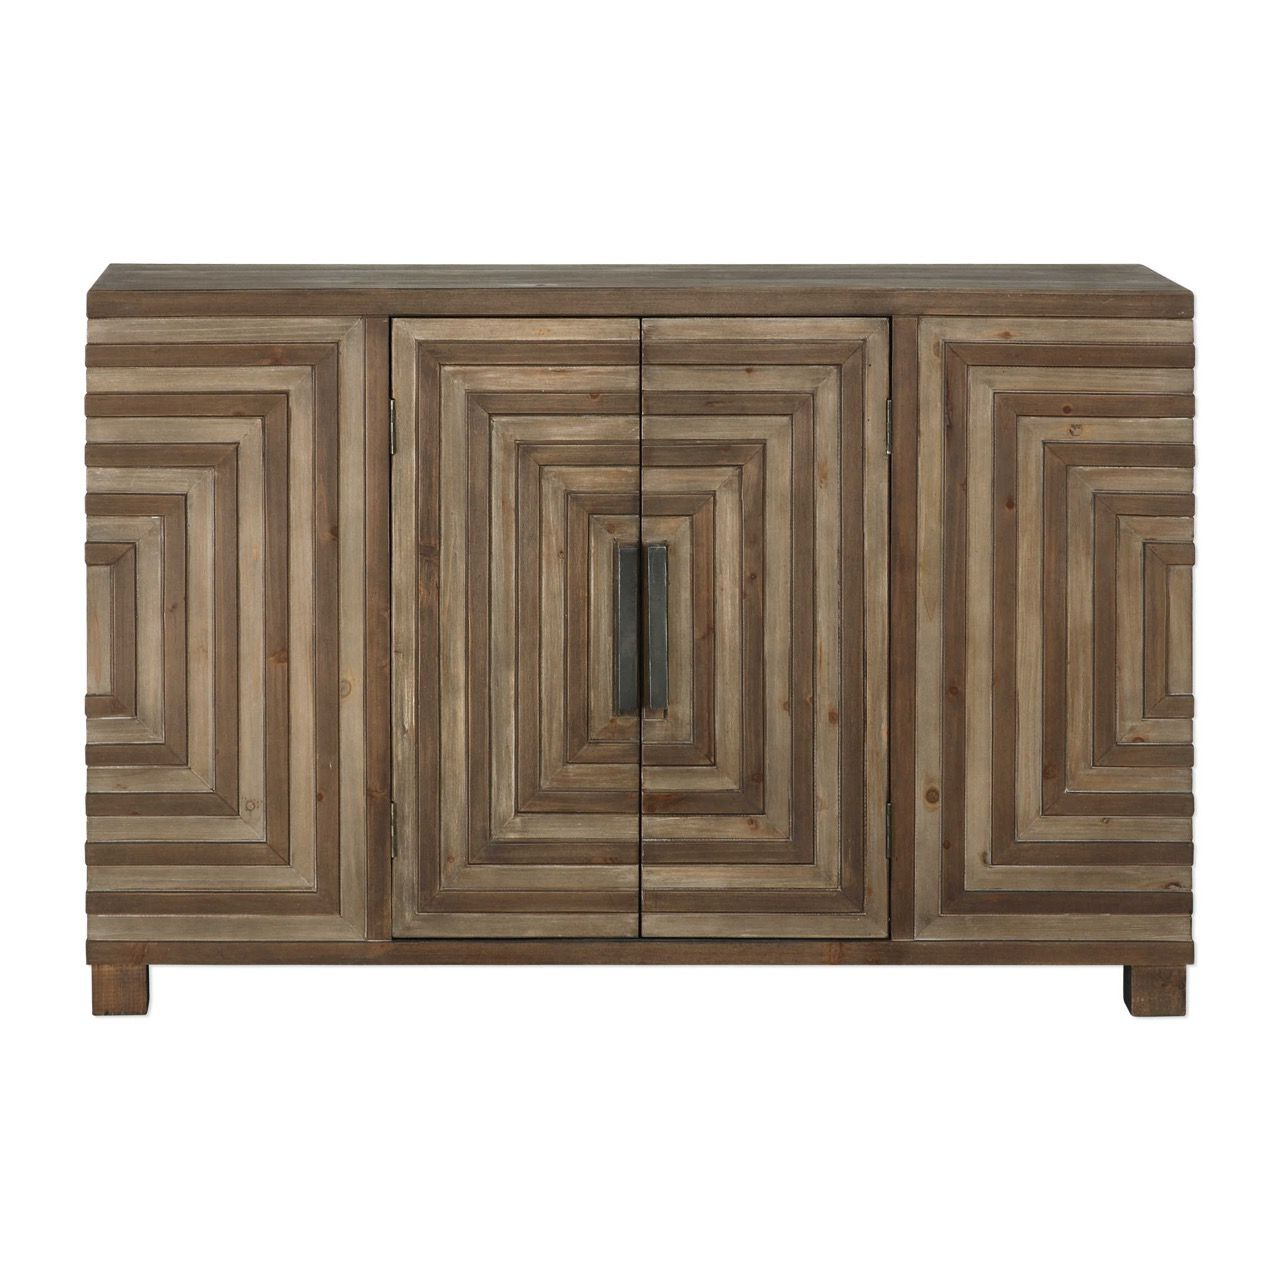 Kipling Console Cabinet | Accent Furniture | Console Cabinet For Ethelinda Media Credenzas (View 10 of 20)